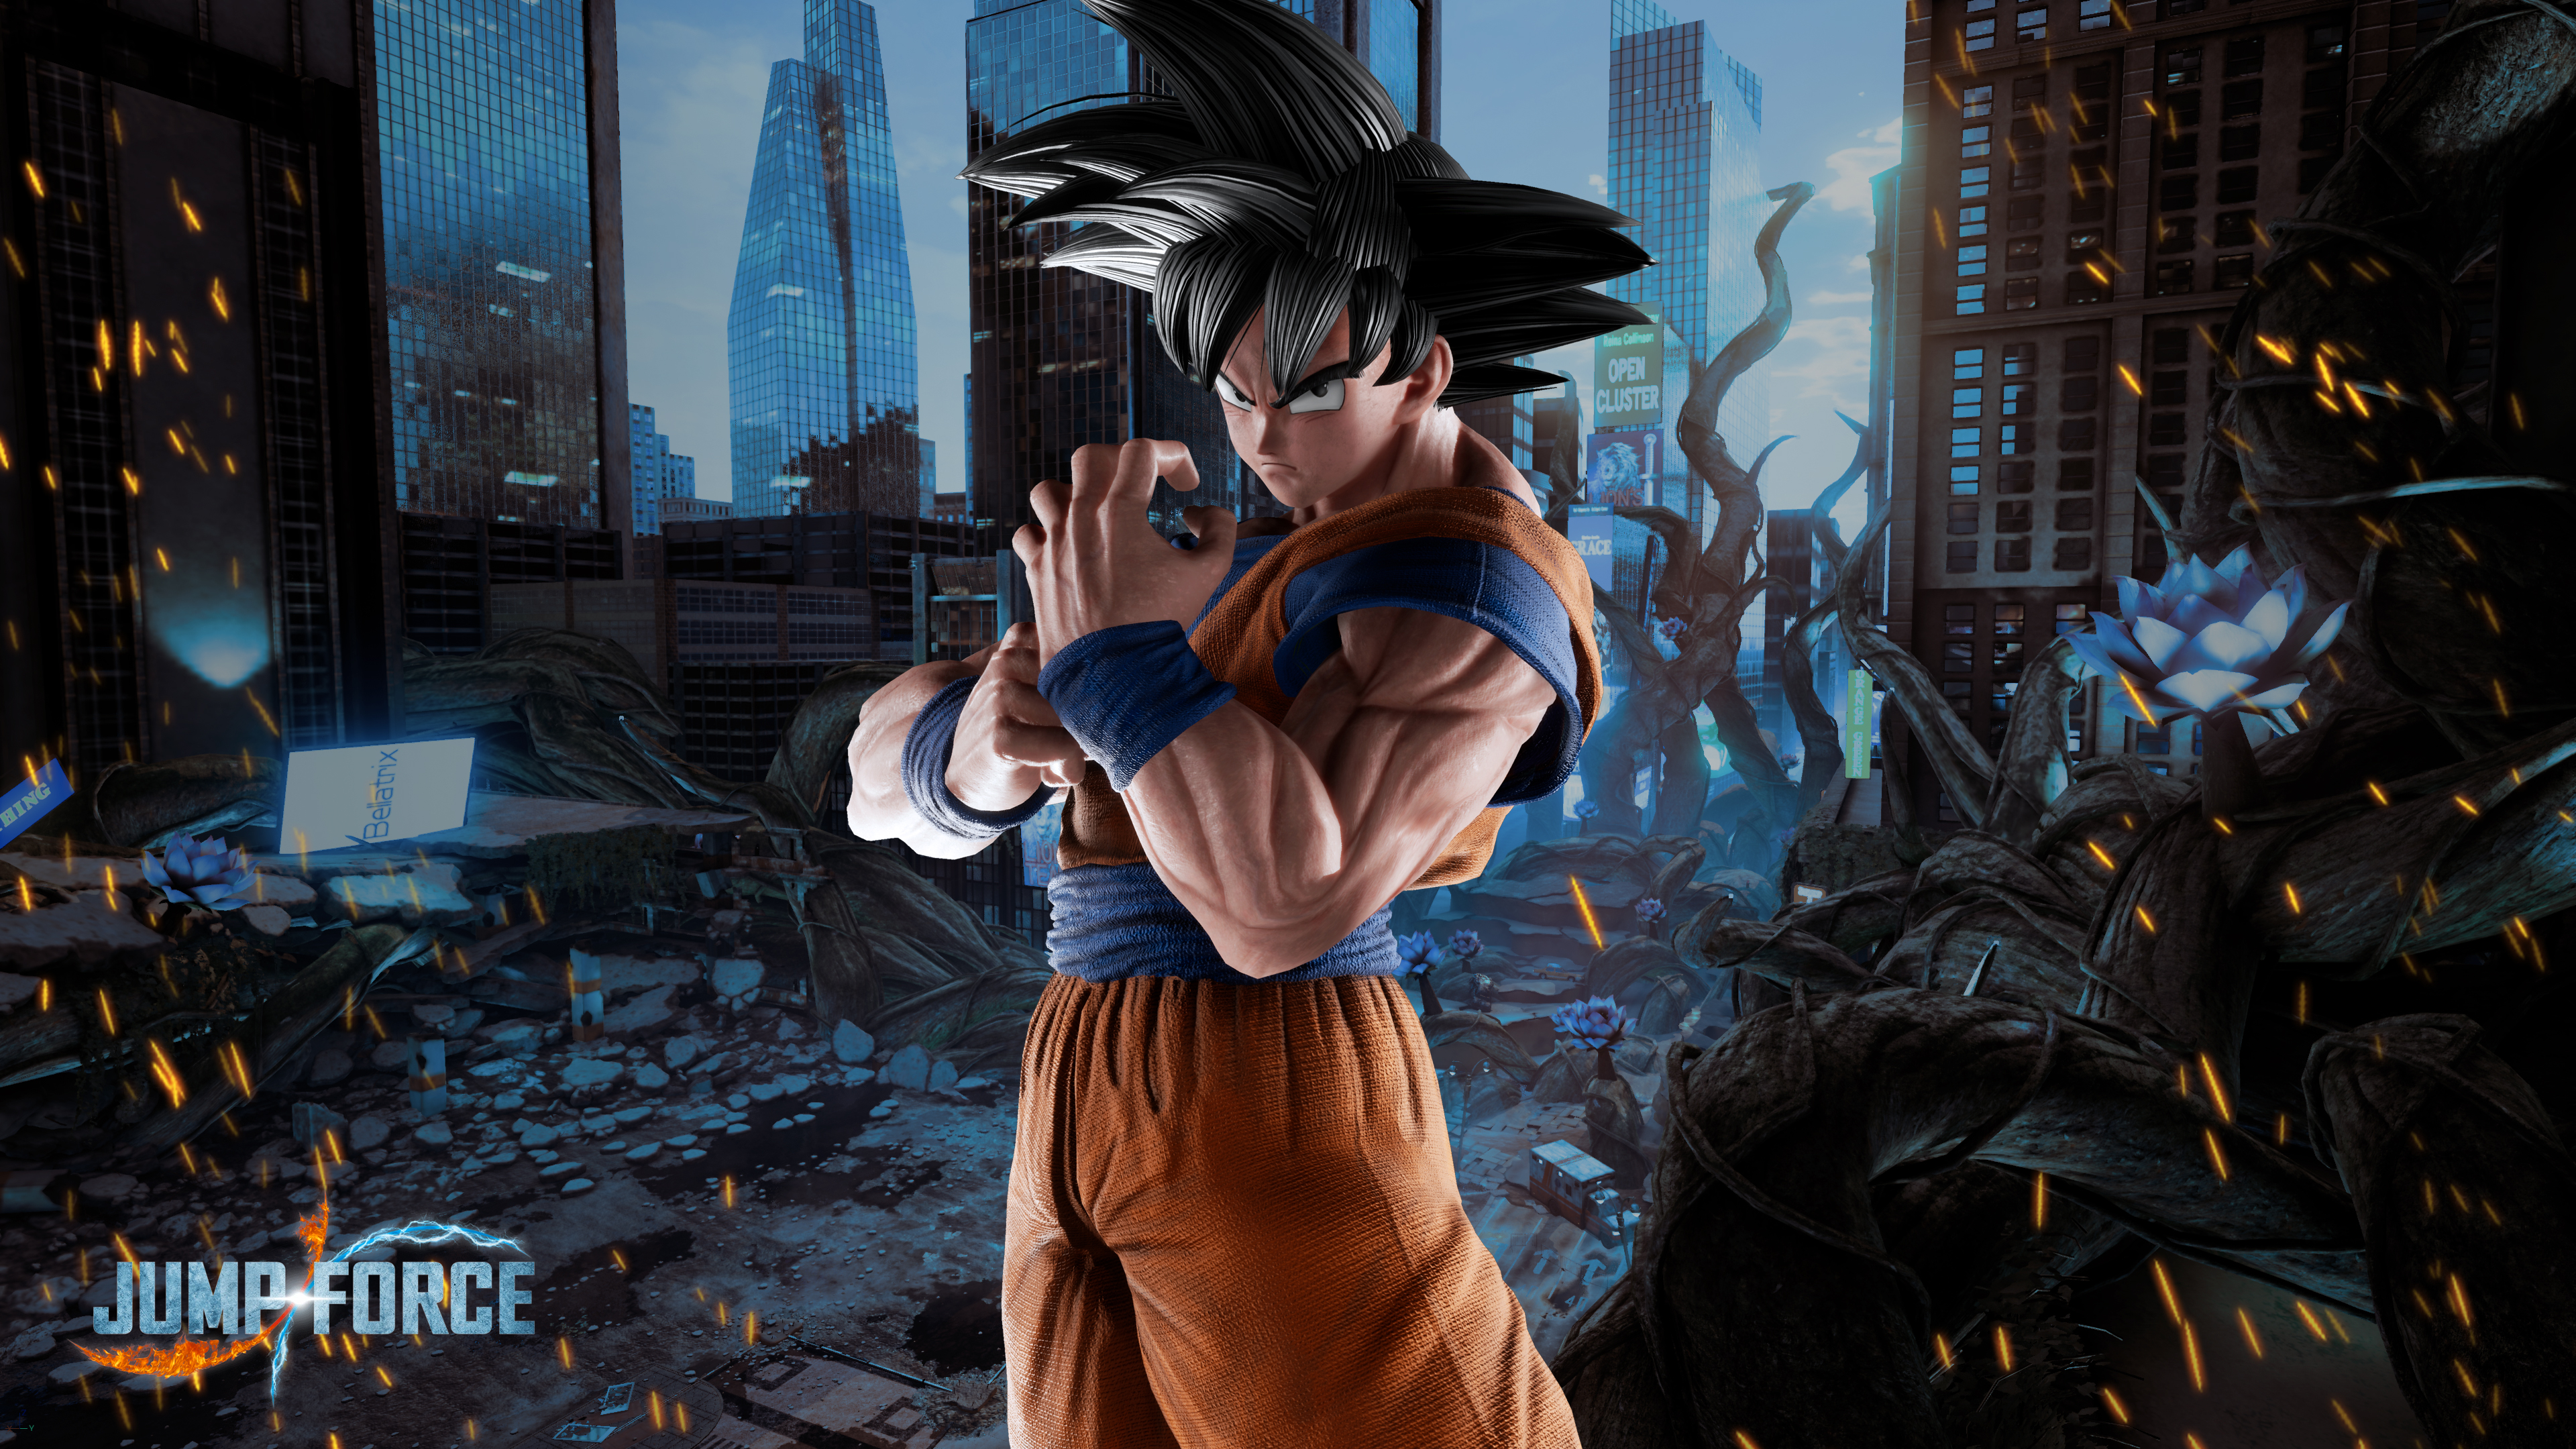 Iphone Se Wallpaper 4k Jump Force Goku Wallpapers Cat With Monocle